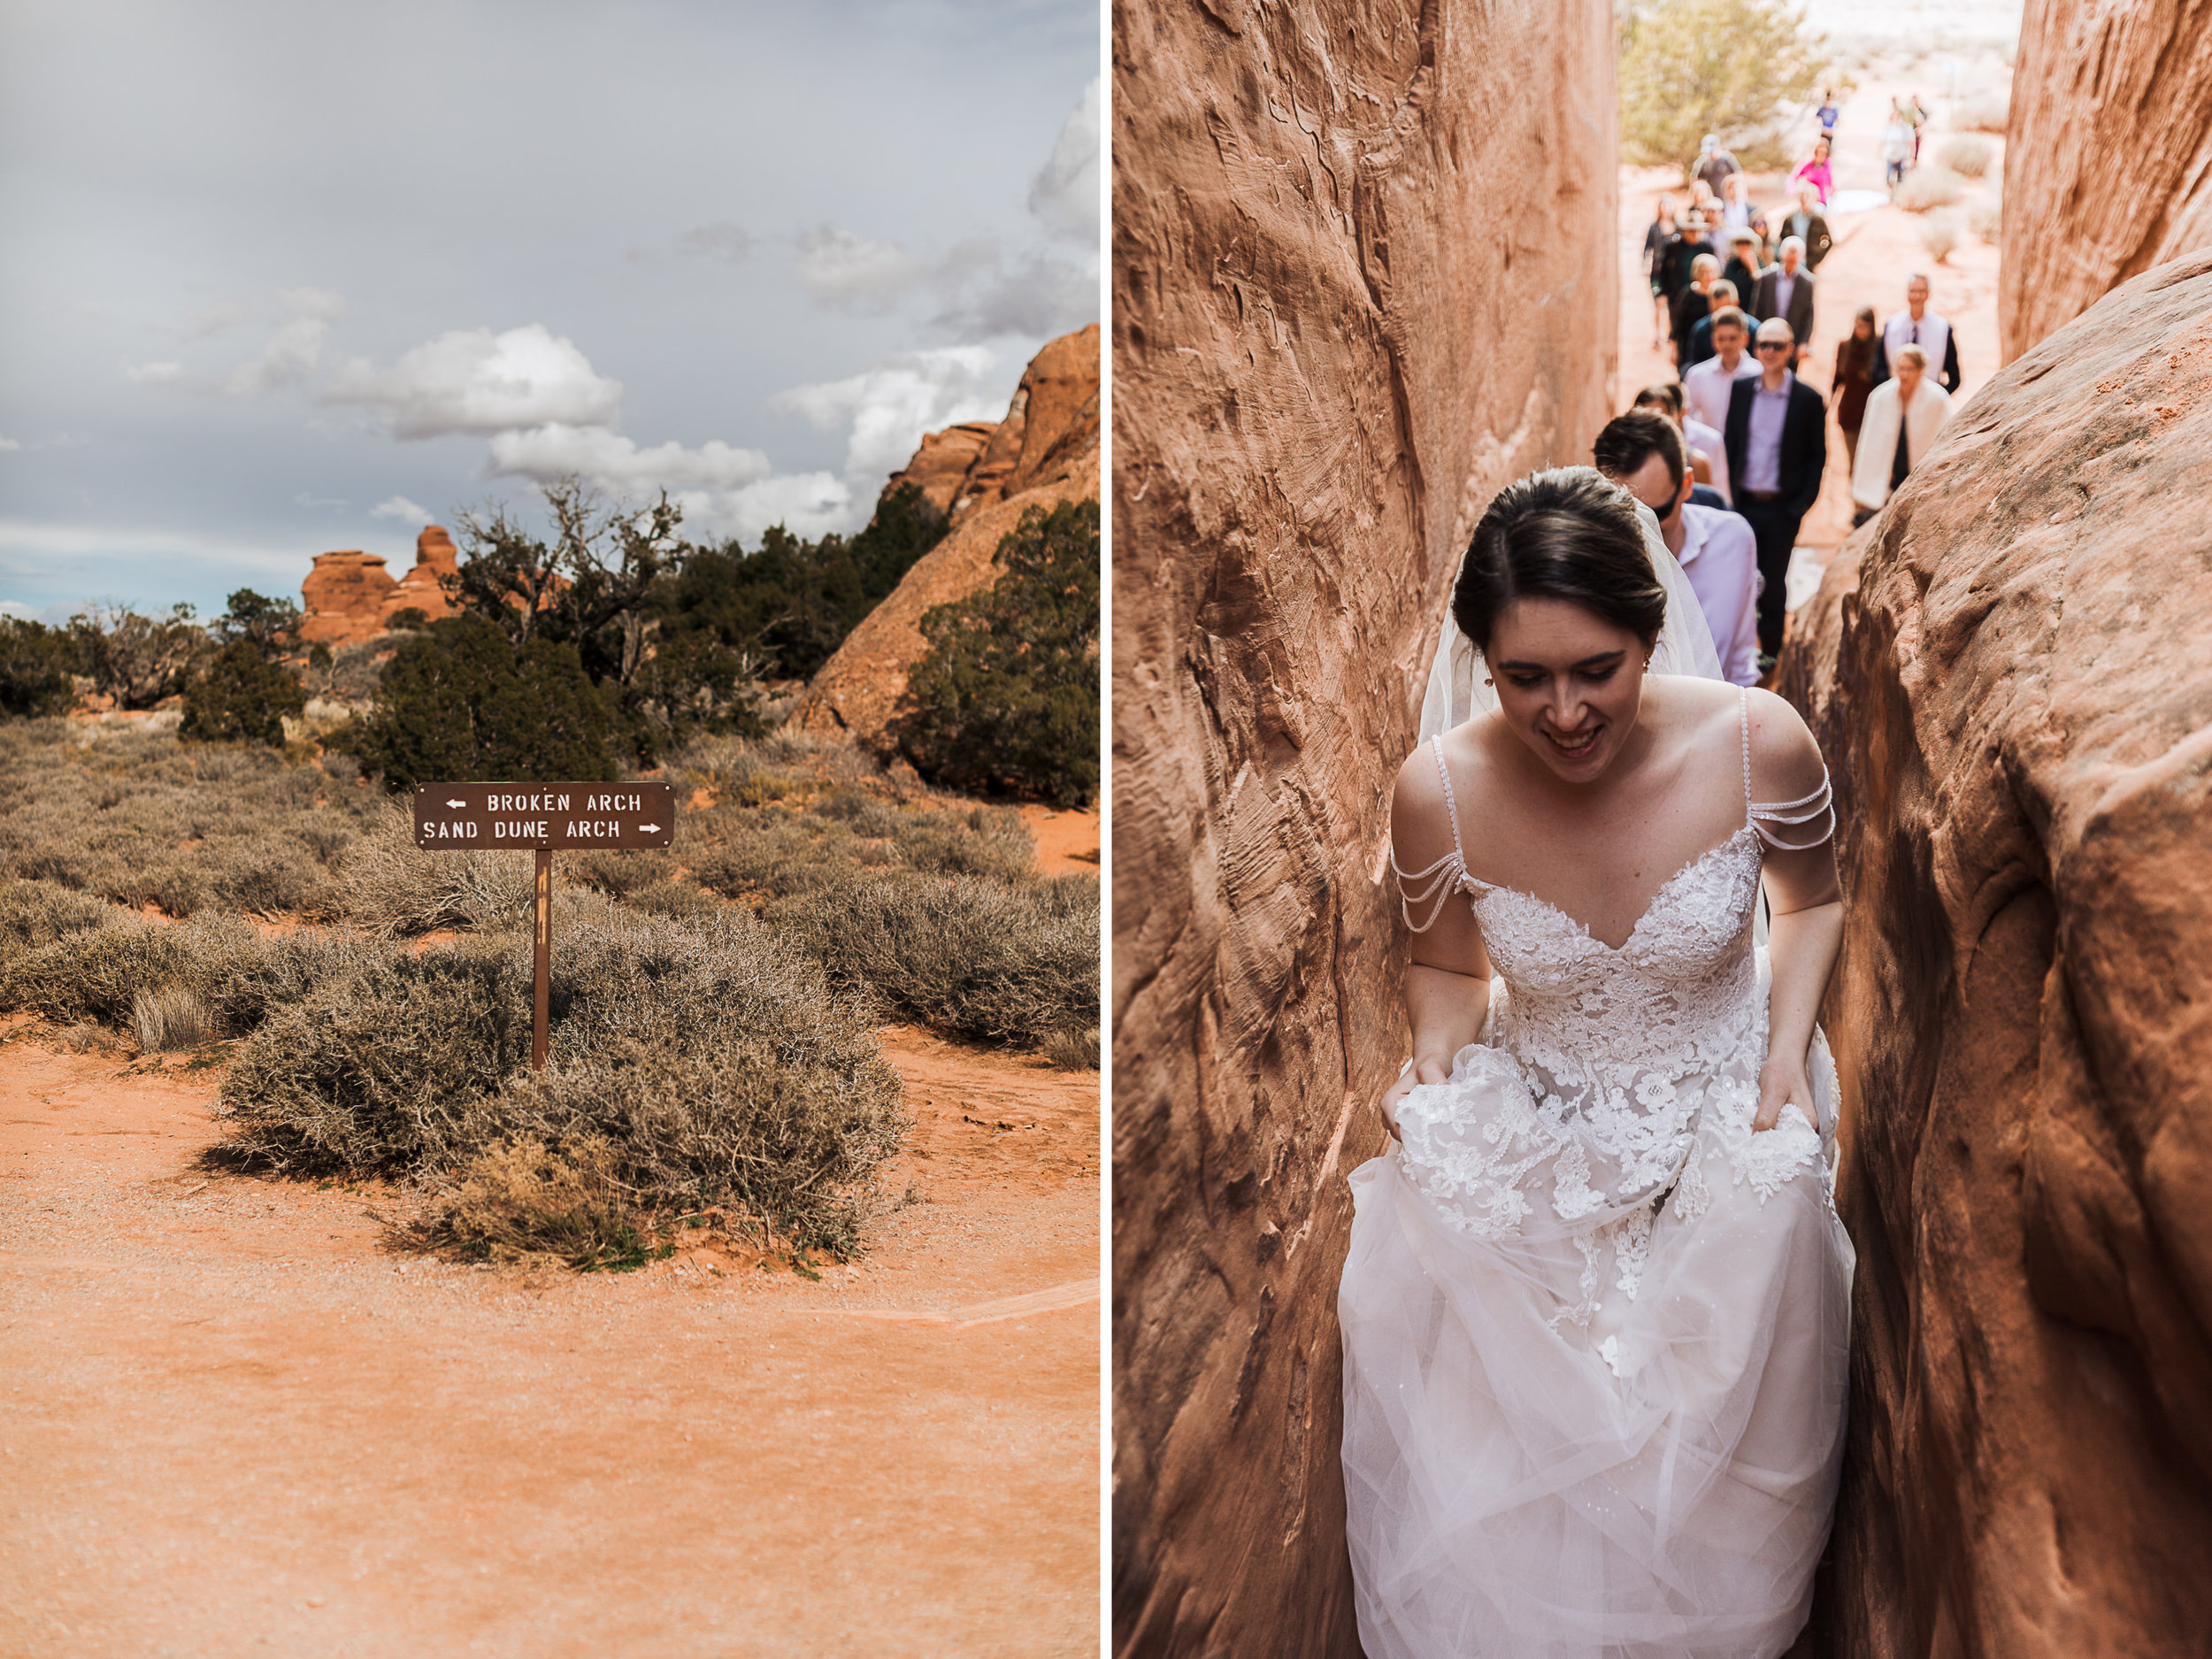 There are only a few designated wedding ceremony locations in Arches National Park.